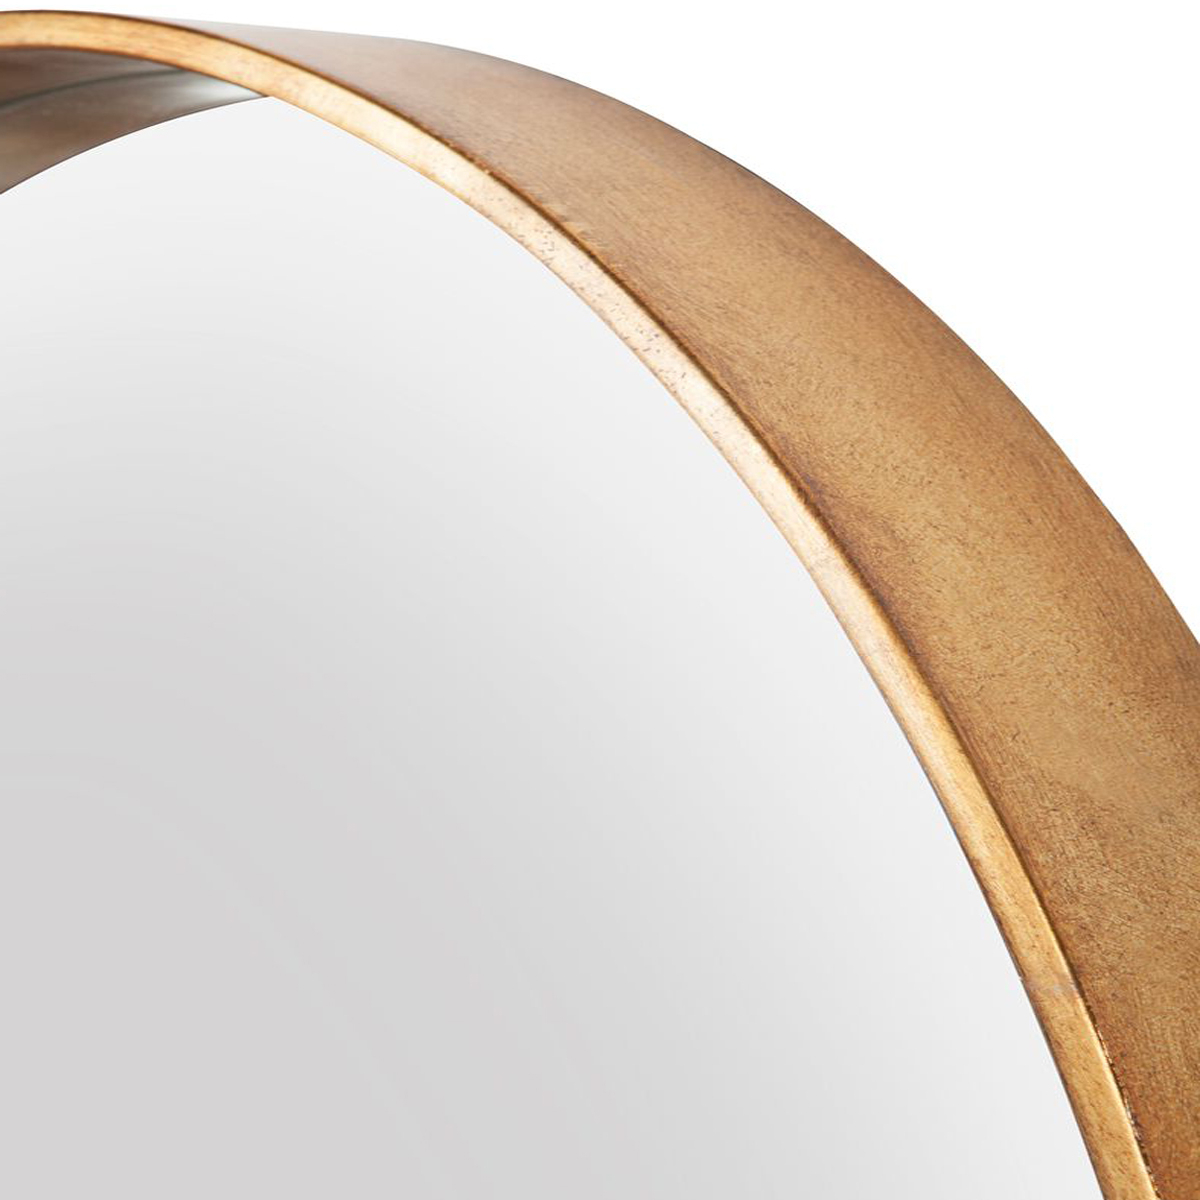 Small Oval Wall Mirrors For Famous Davey Gold Oval Wall Mirror – Small 90 X 61Cm Or Large 115 X 78Cm (View 17 of 20)